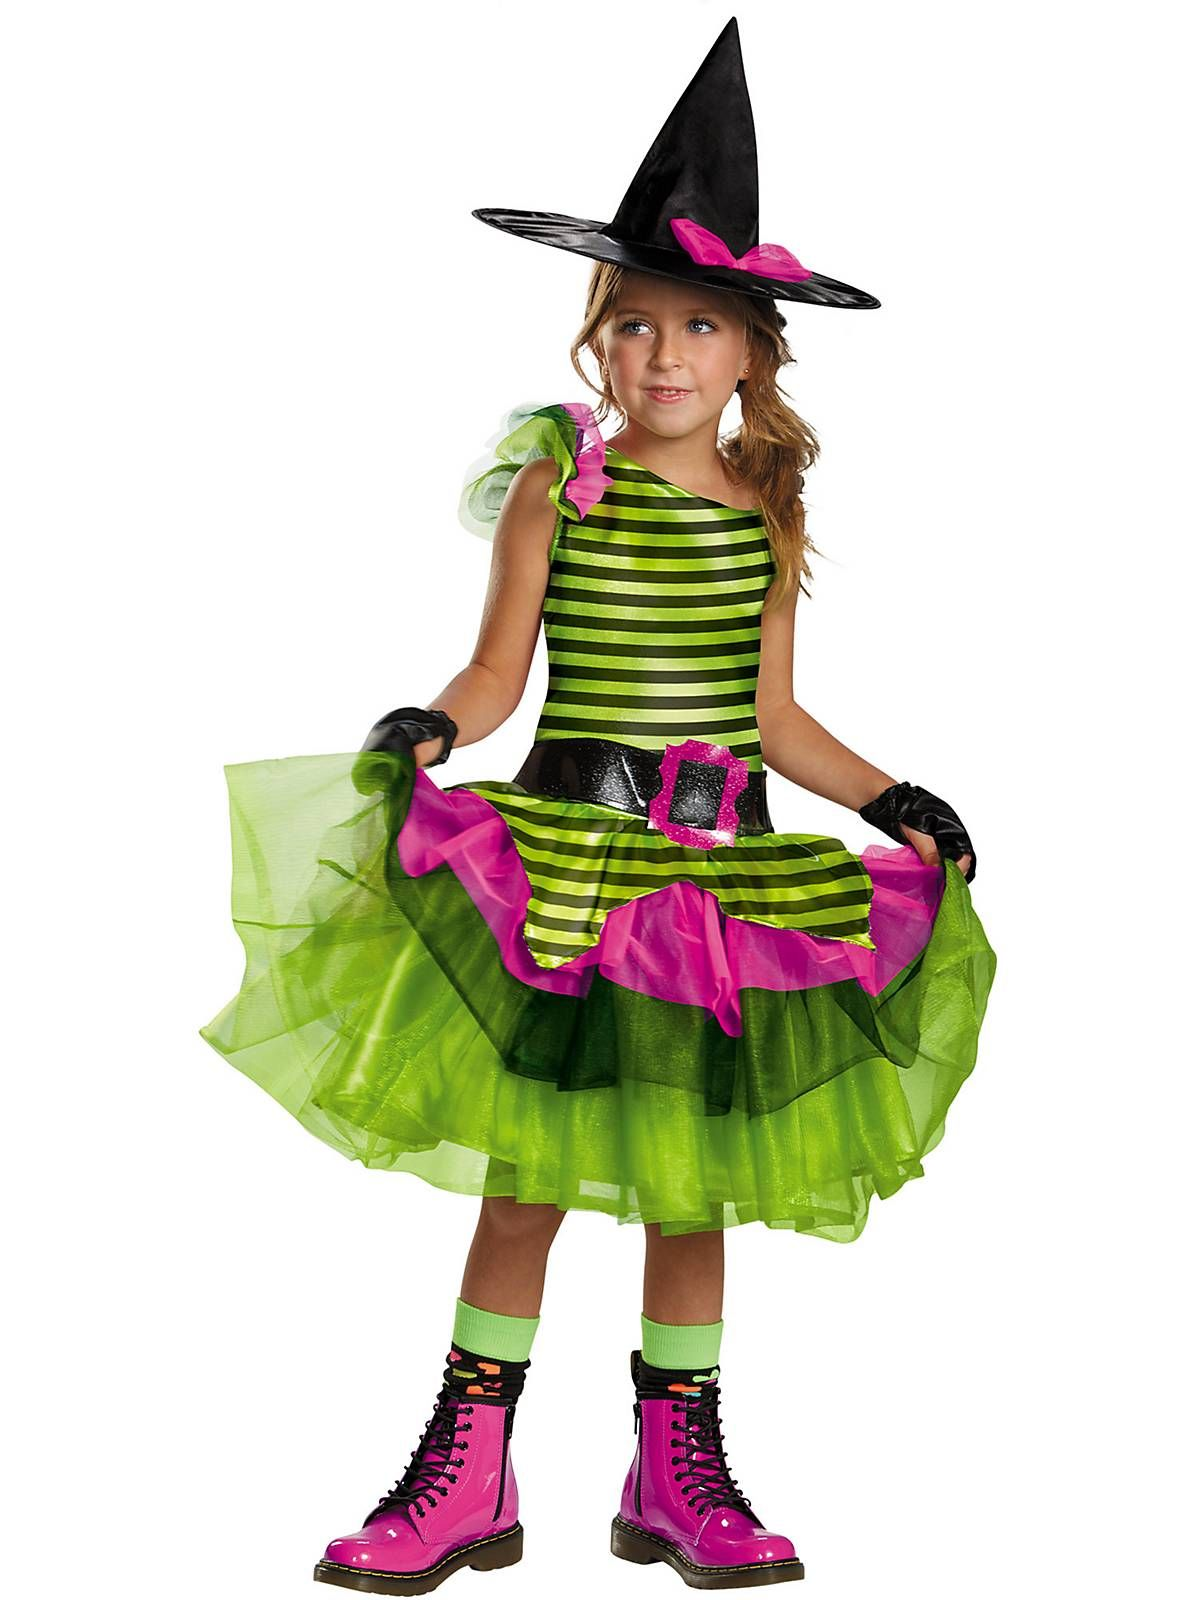 Whimsy Witch Costume Wholesale Witch Costumes for girls